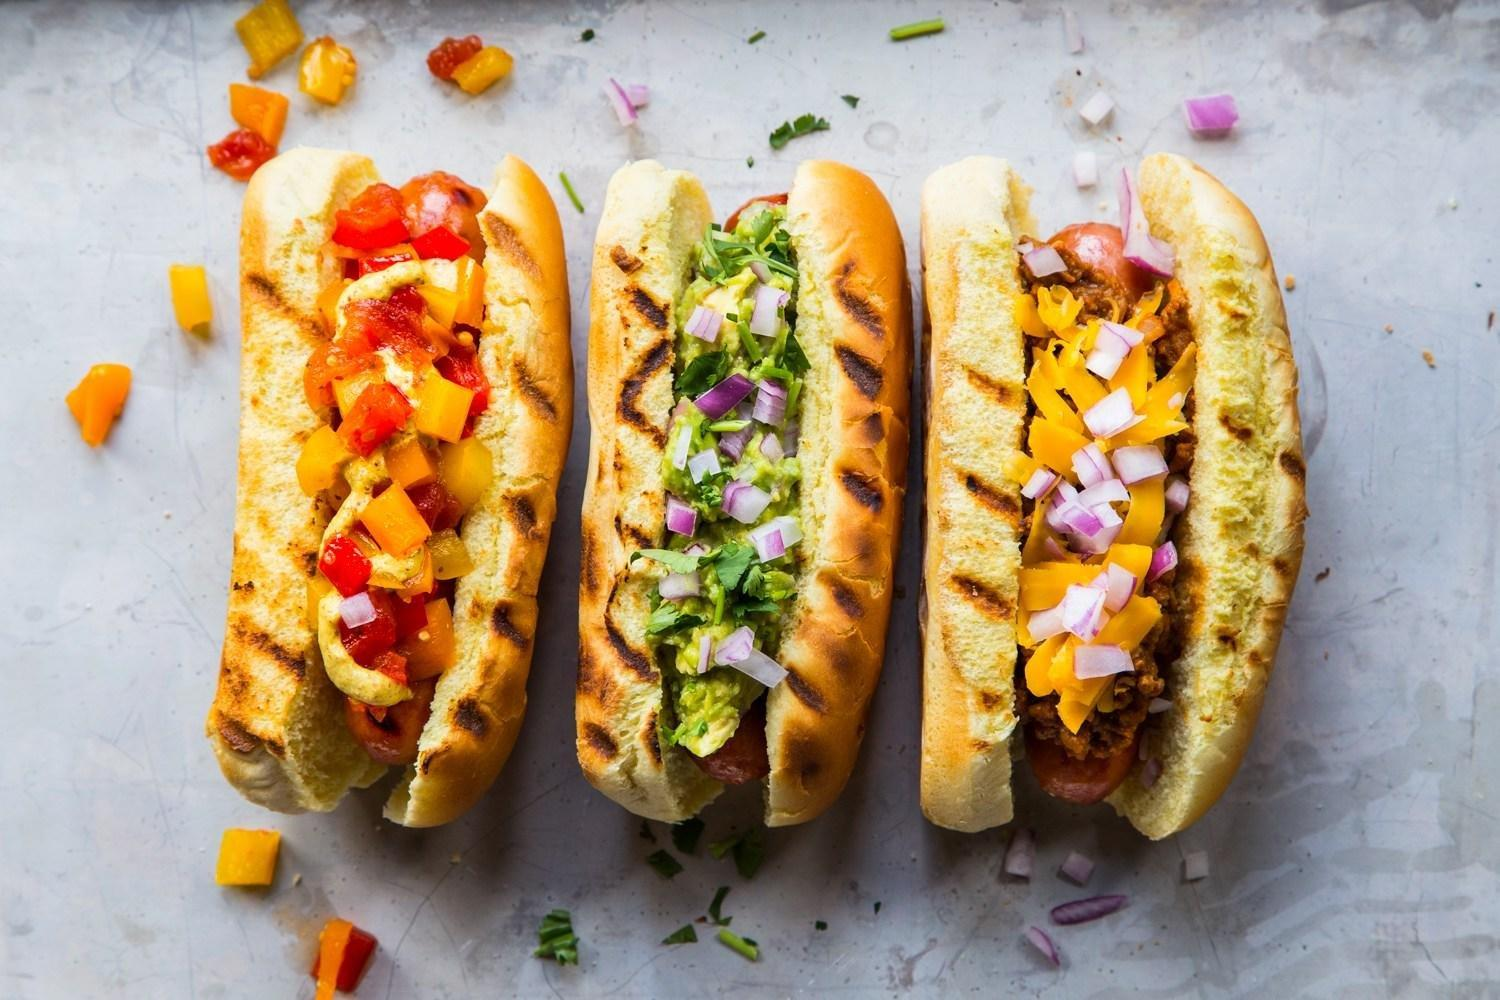 The Happy Diabetic's Healthy Hot Dog Topping Recipes - Divabetic